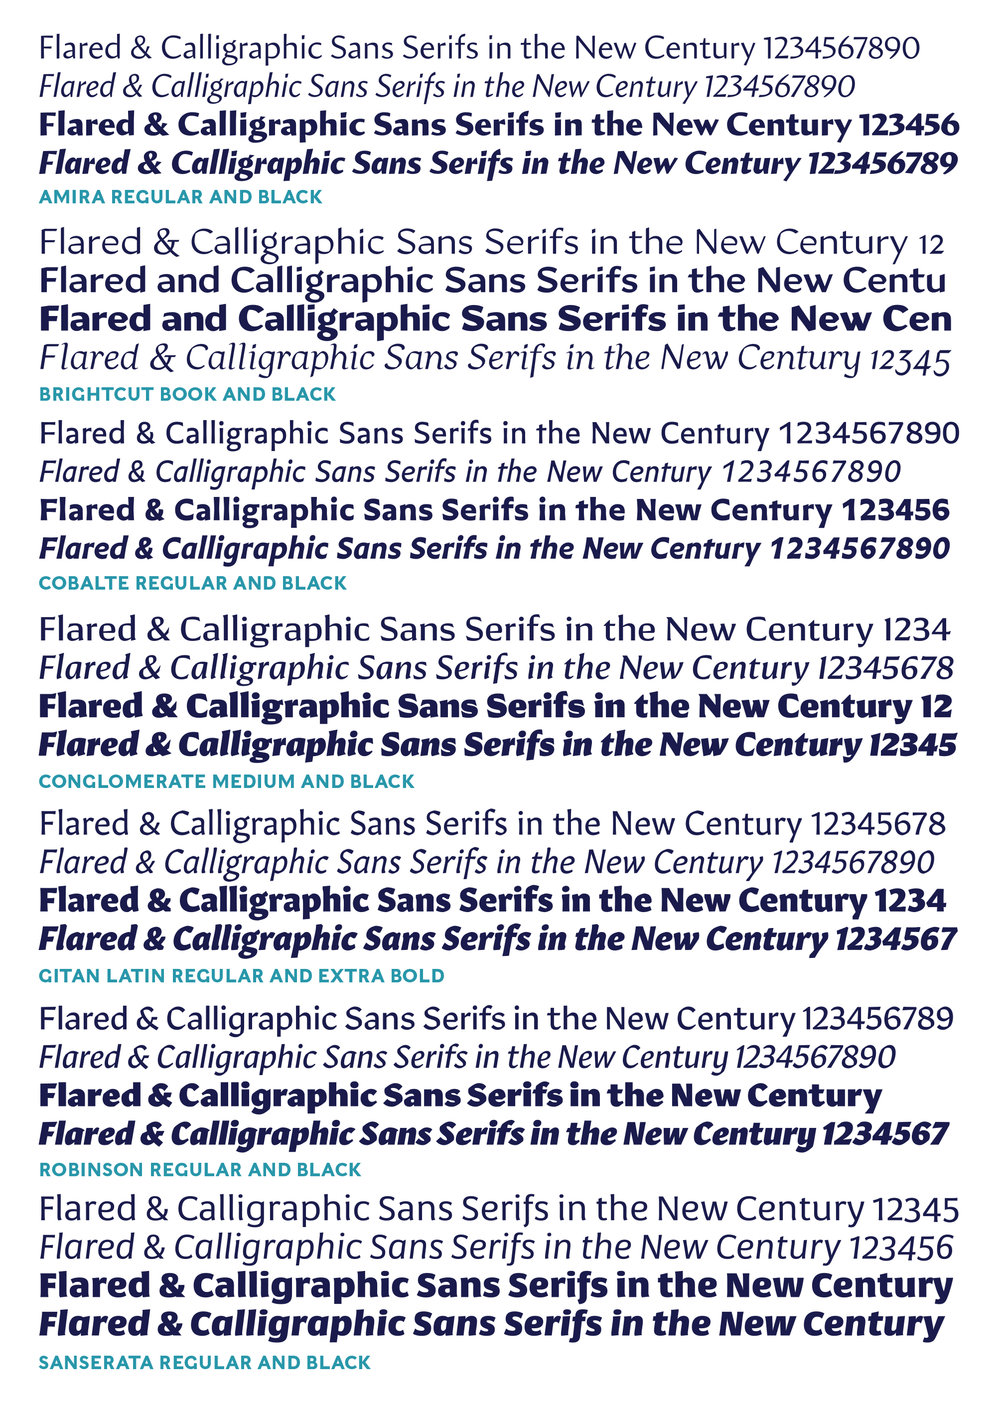 A comparison of specimens of seven contemporary typefaces with flared stems.